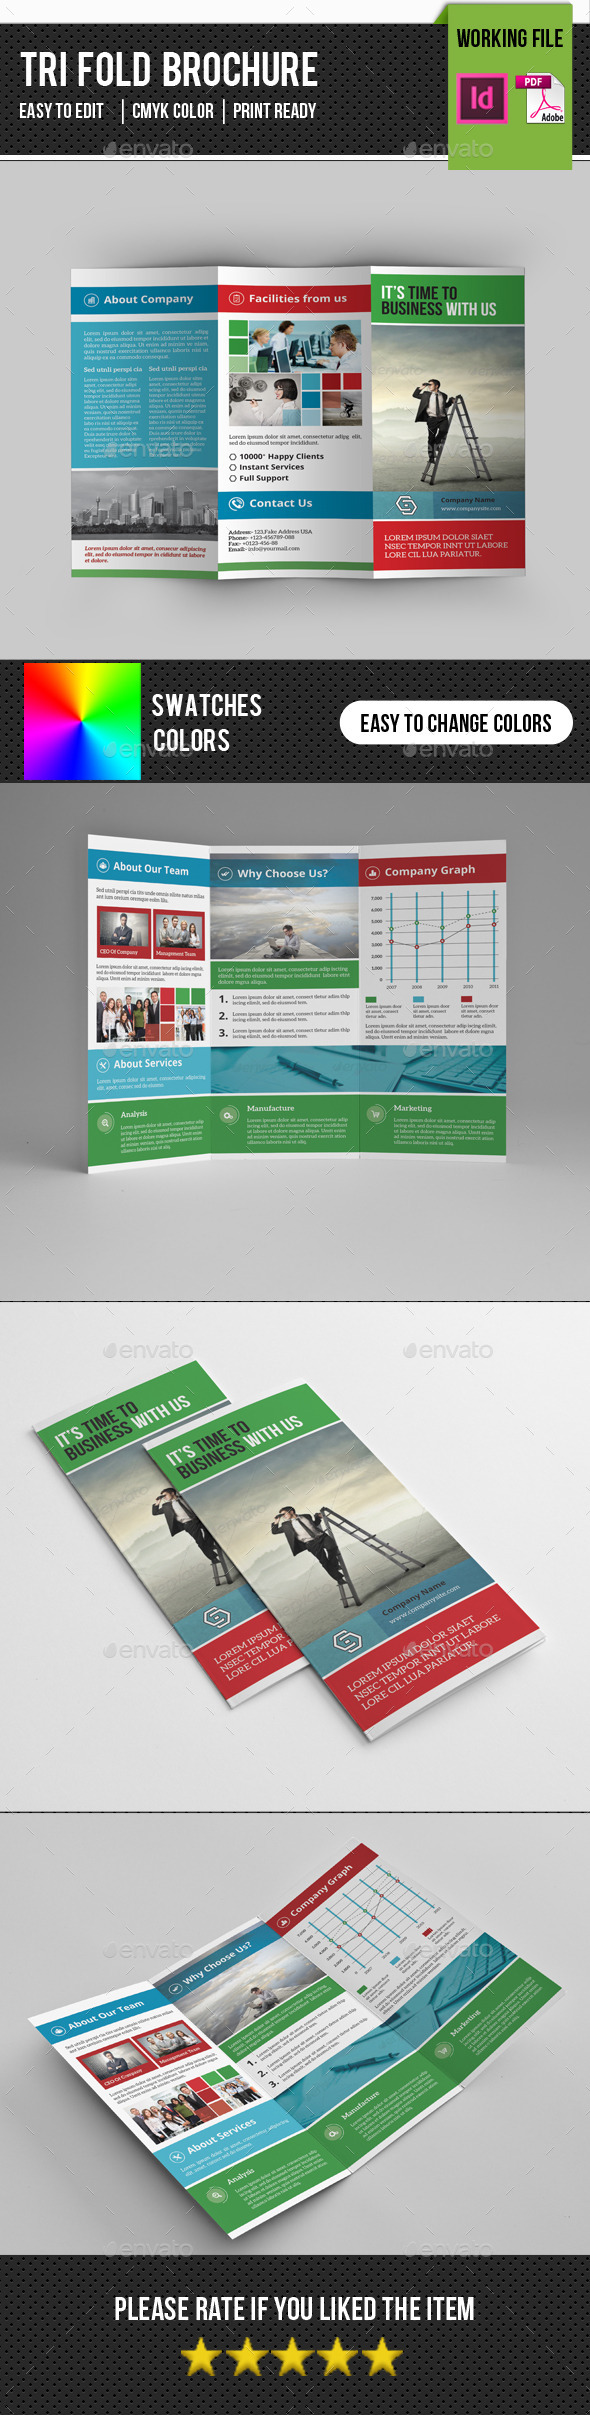 Corporate Trifold Brochure-V249 - Corporate Brochures